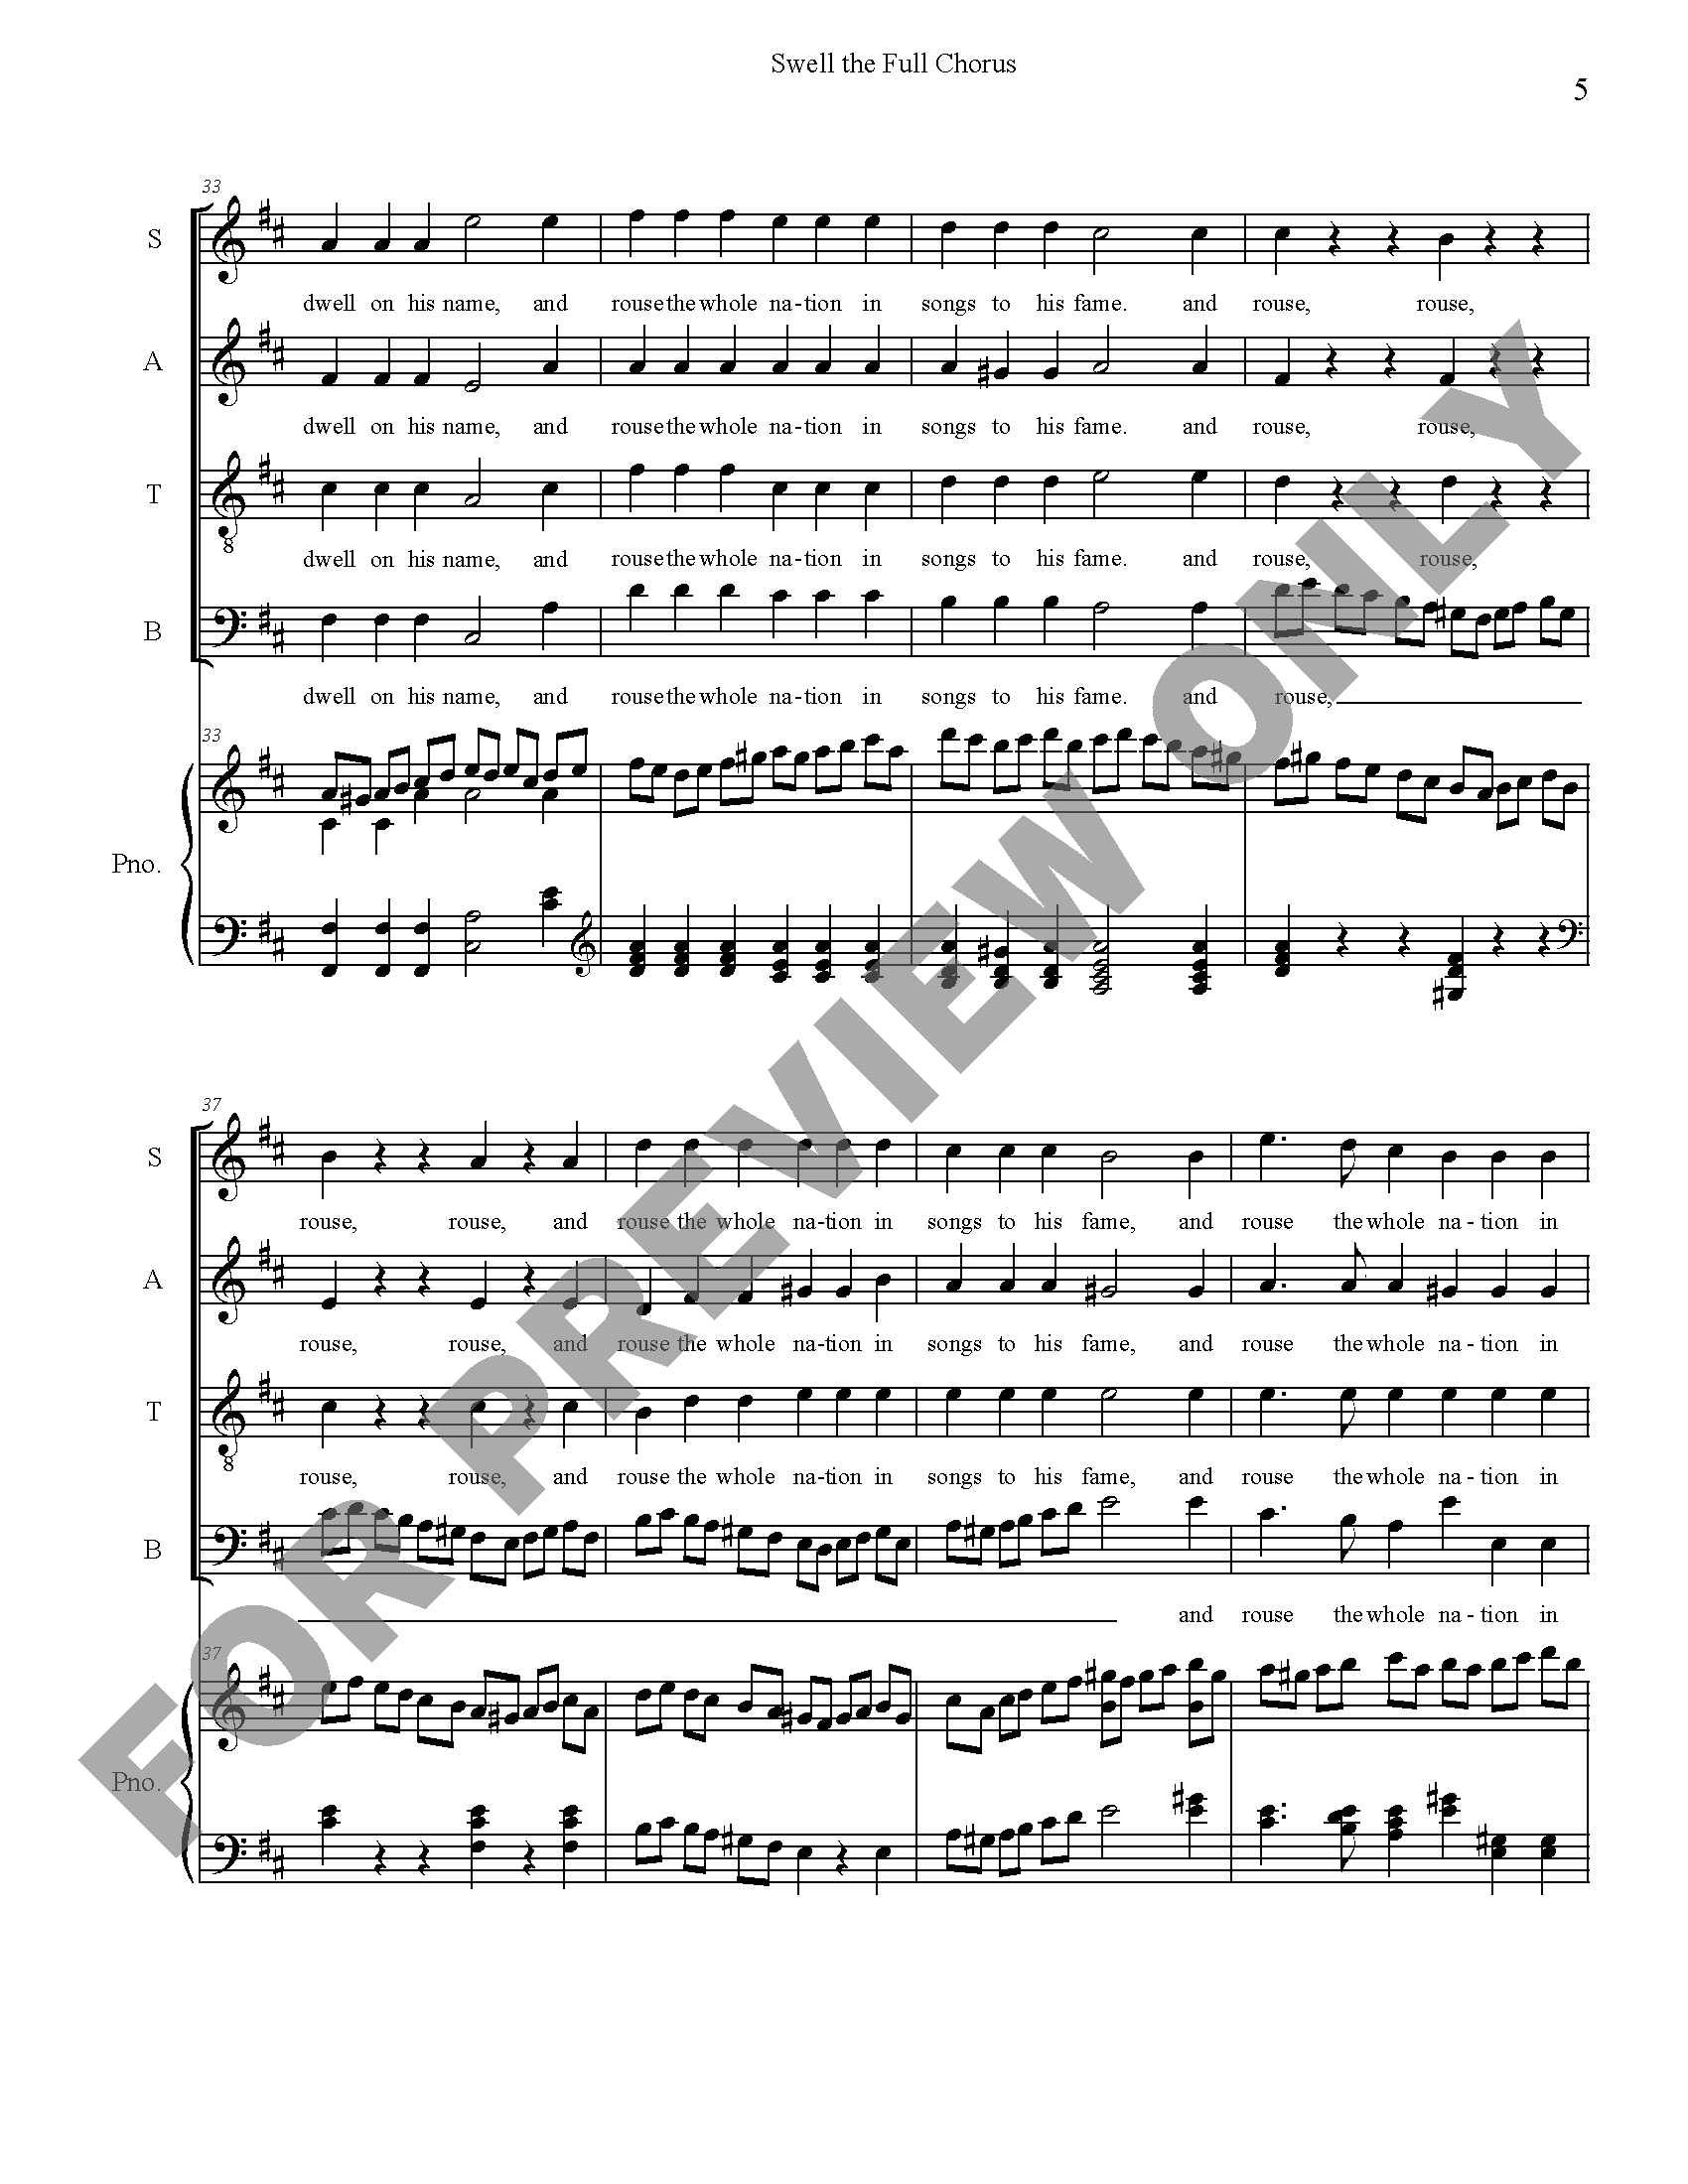 swell-the-full-chorus_persual_Page_5